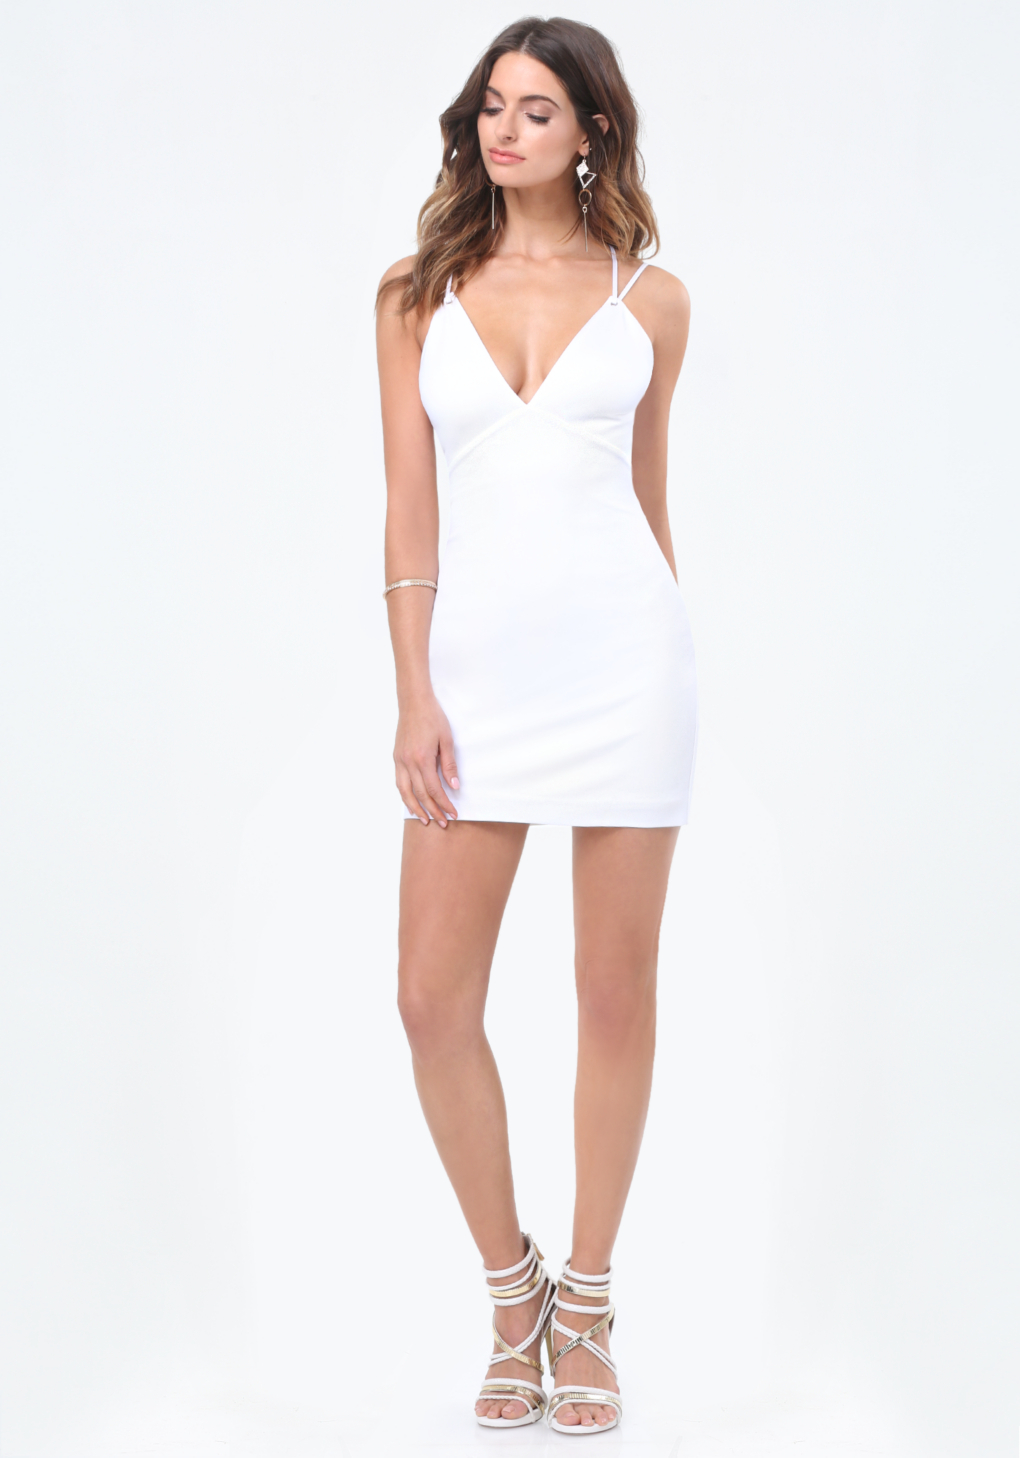 Bebe ponte double strap dress in white lyst for Bebe dresses wedding guest